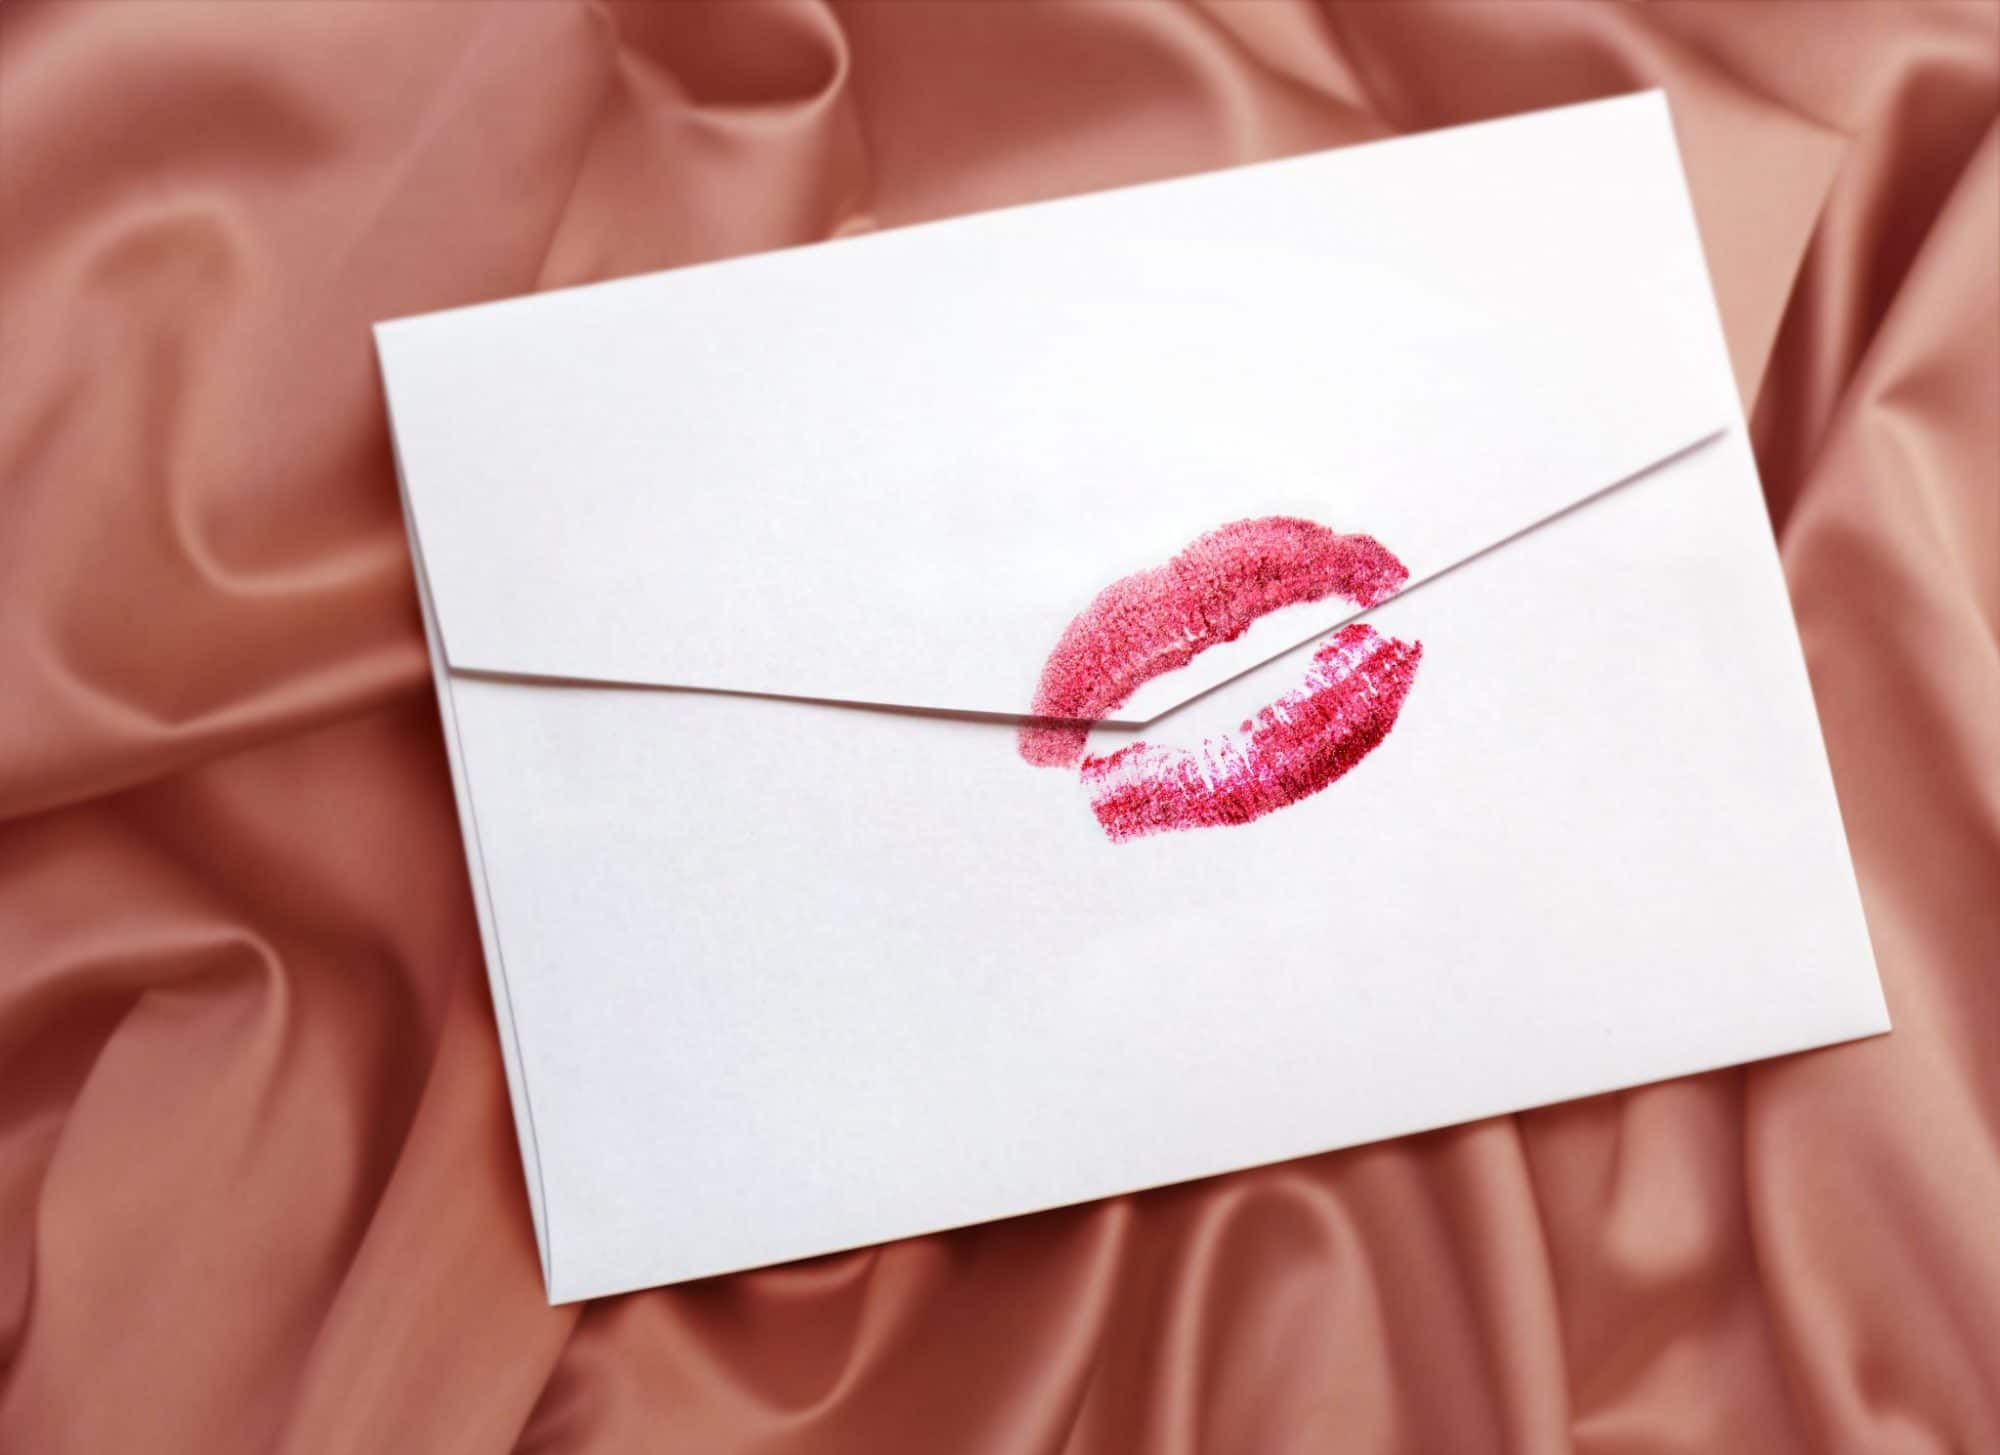 Research or Rumor: Lead in Your Lipstick